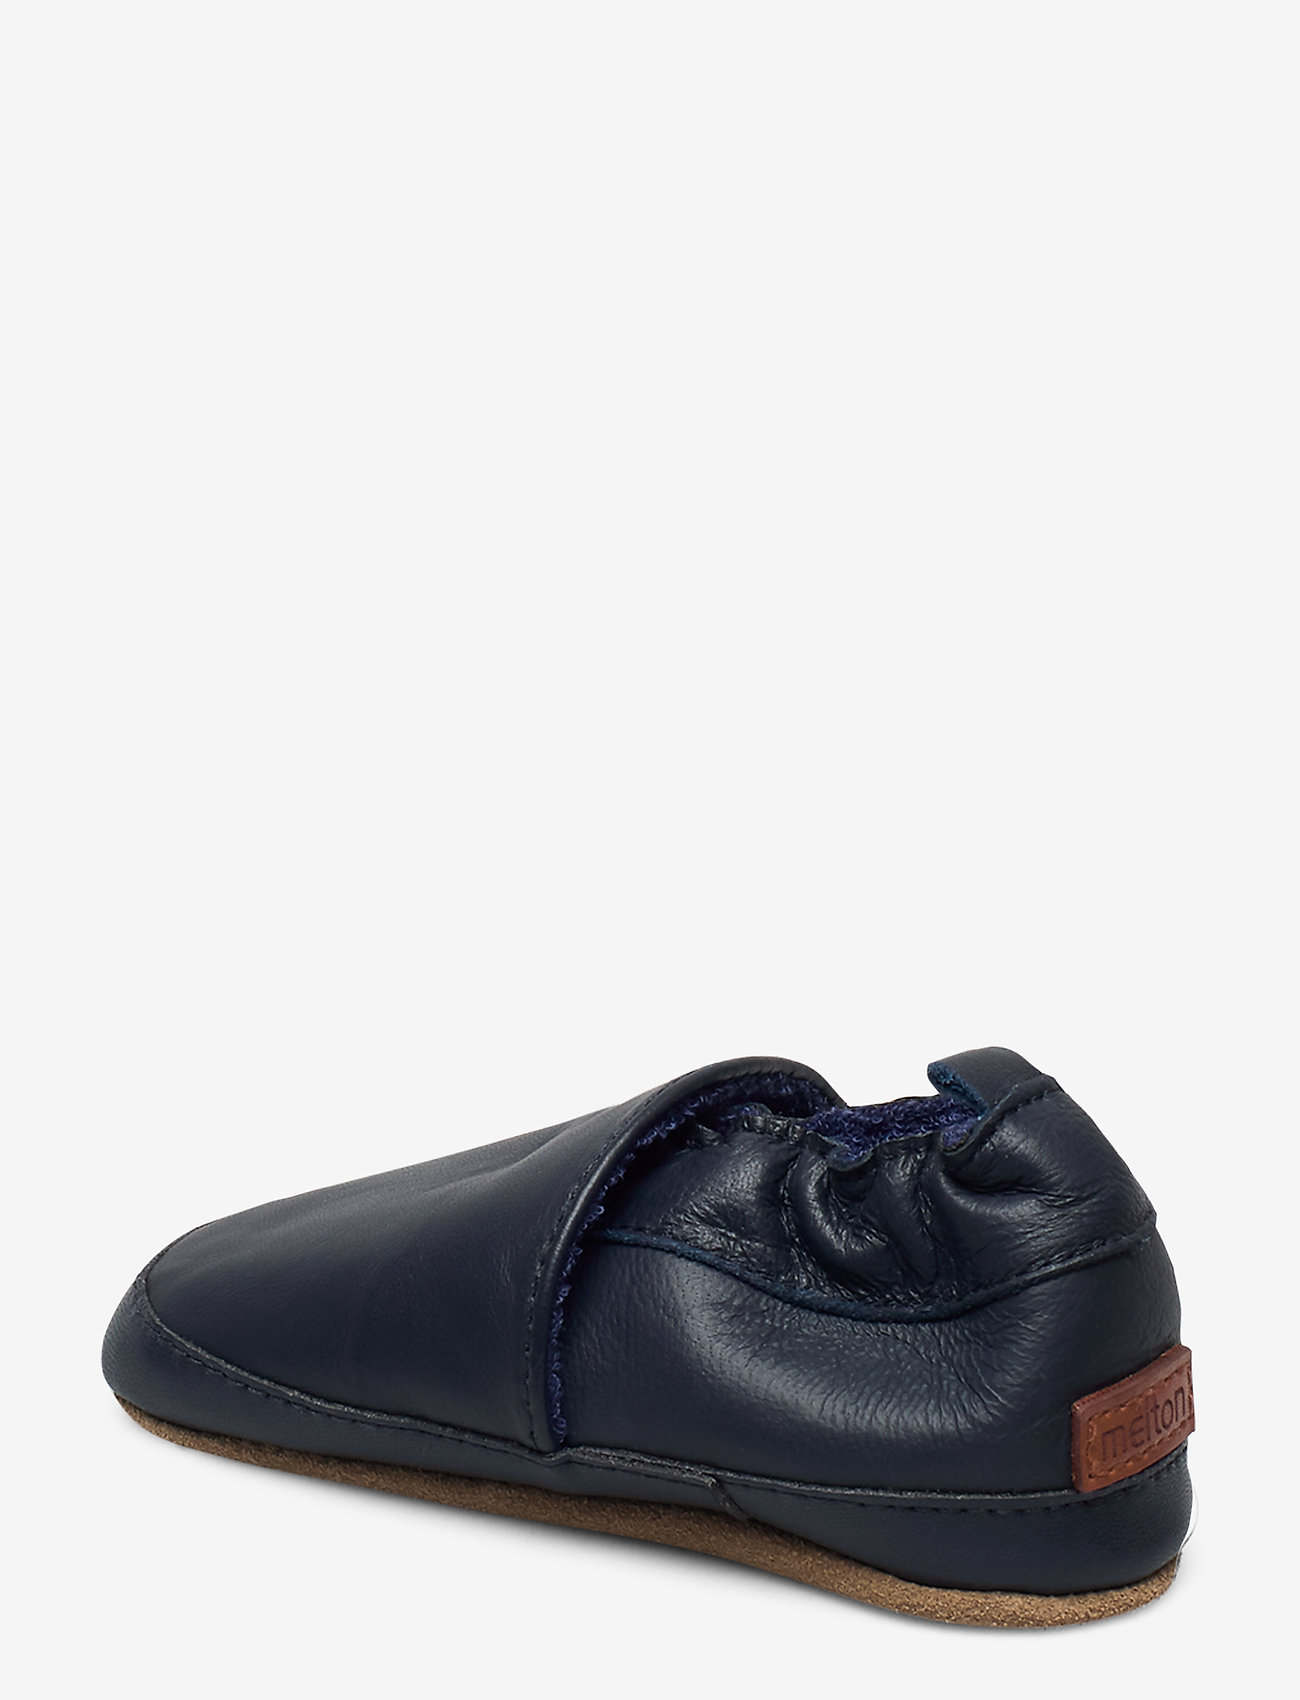 Melton - Leather shoe - Loafer - hausschuhe - 287/bluenights - 1